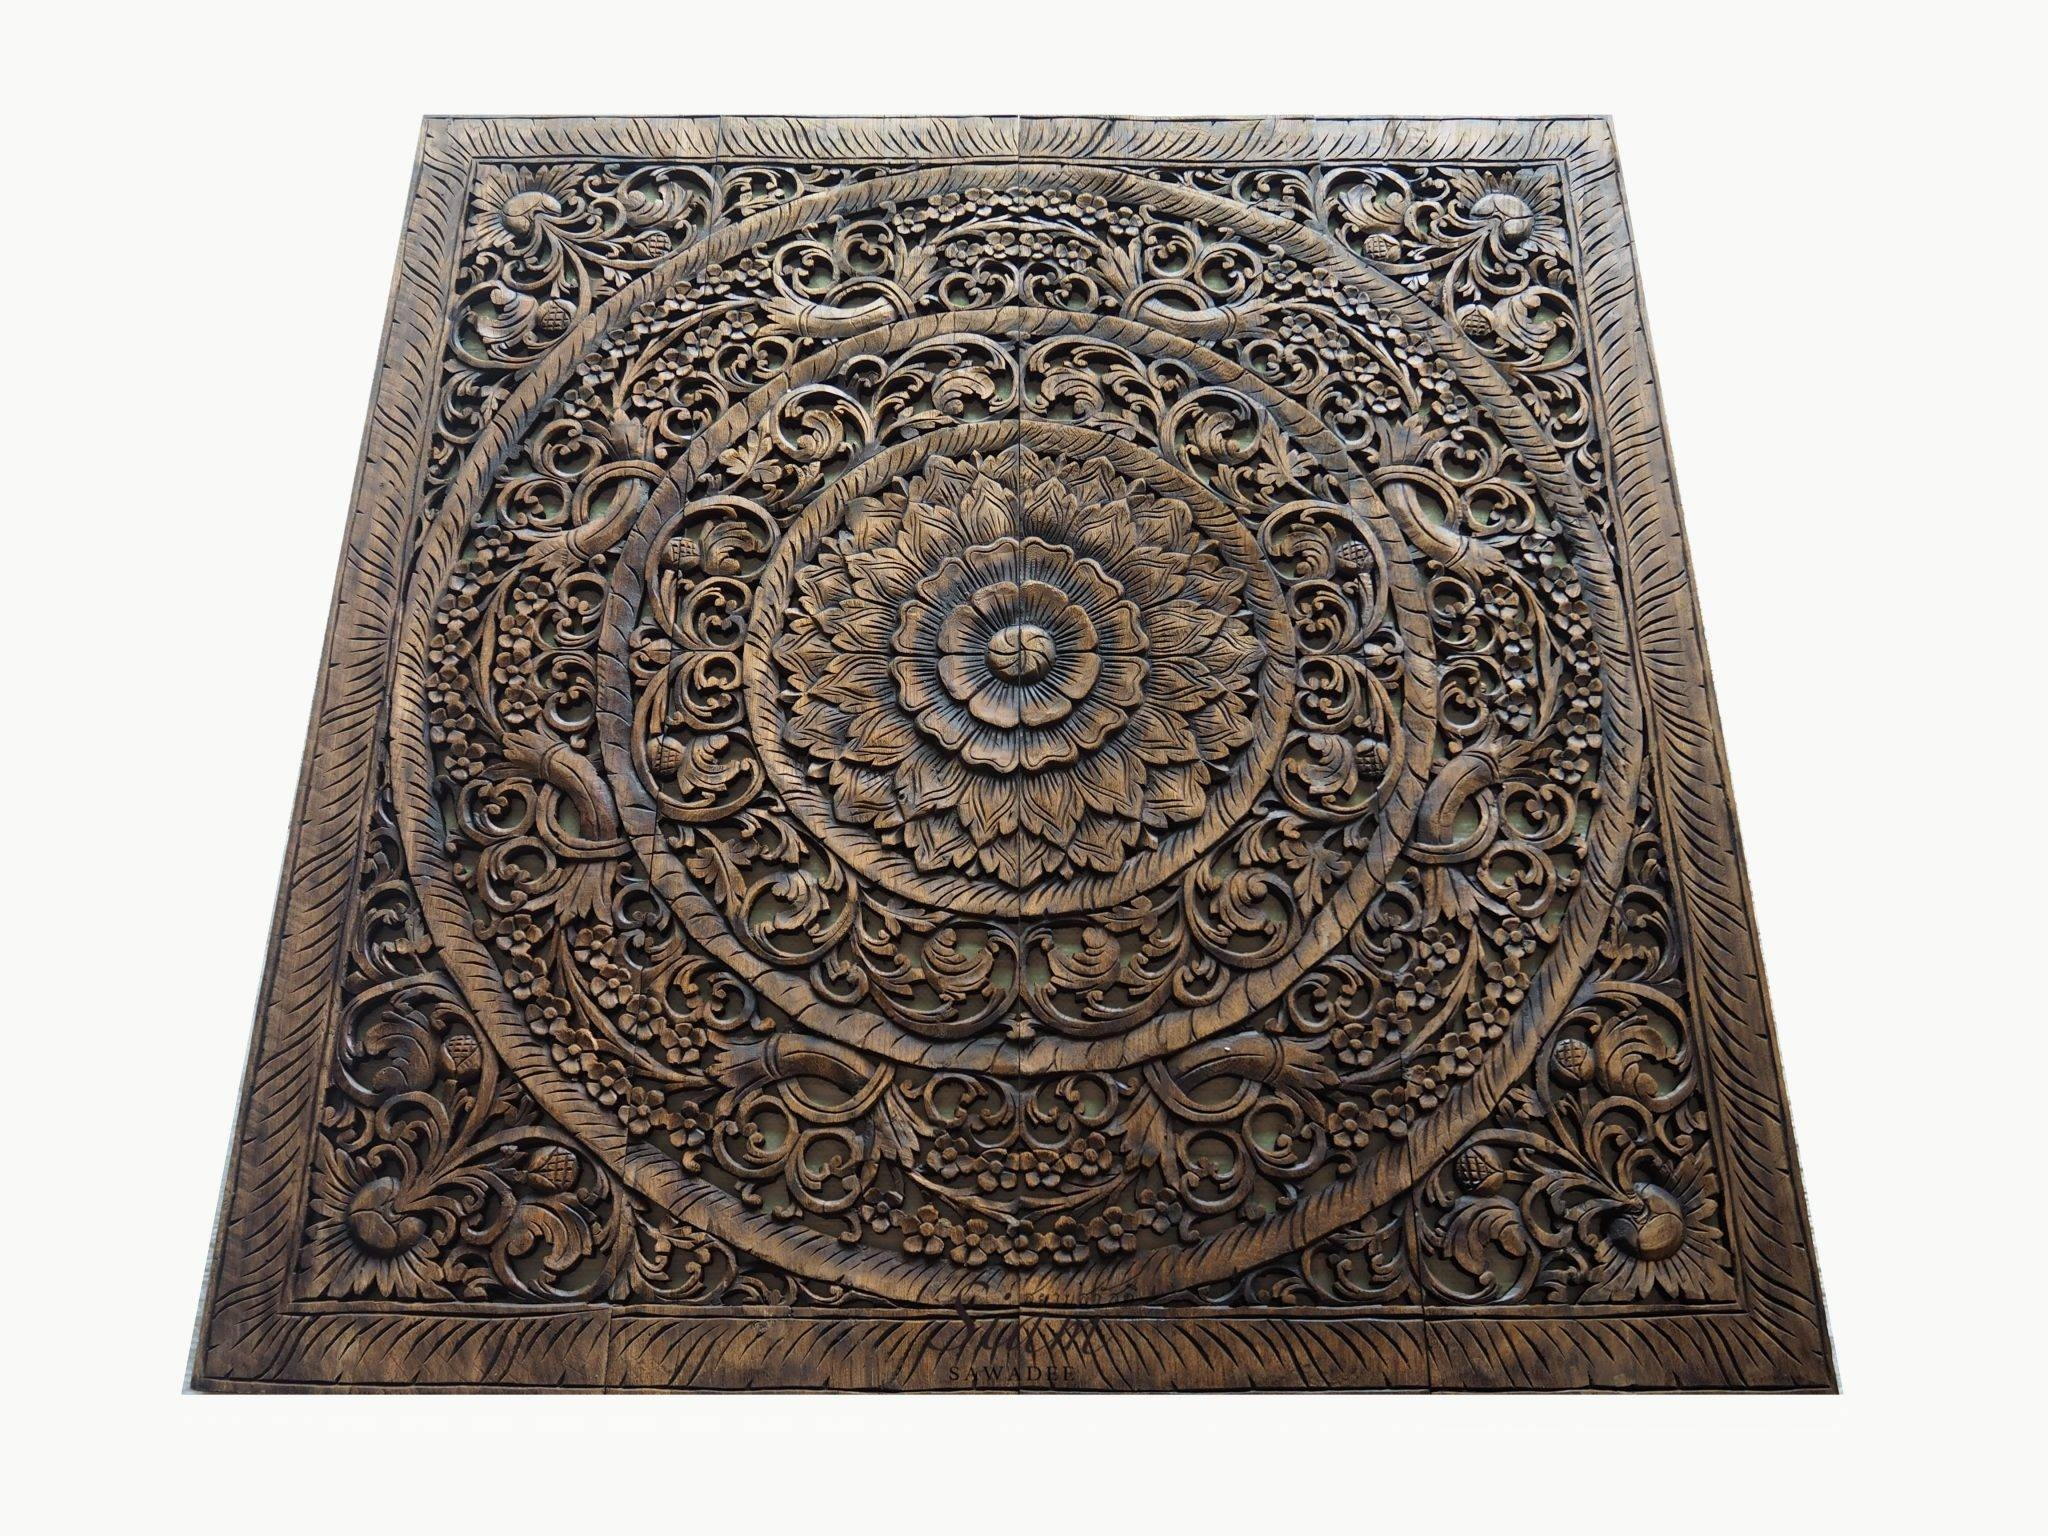 Grand Carved Teak Wood Wall Art Panel Plaque Decor – Siam Sawadee Pertaining To Current Wood Carved Wall Art Panels (View 4 of 25)